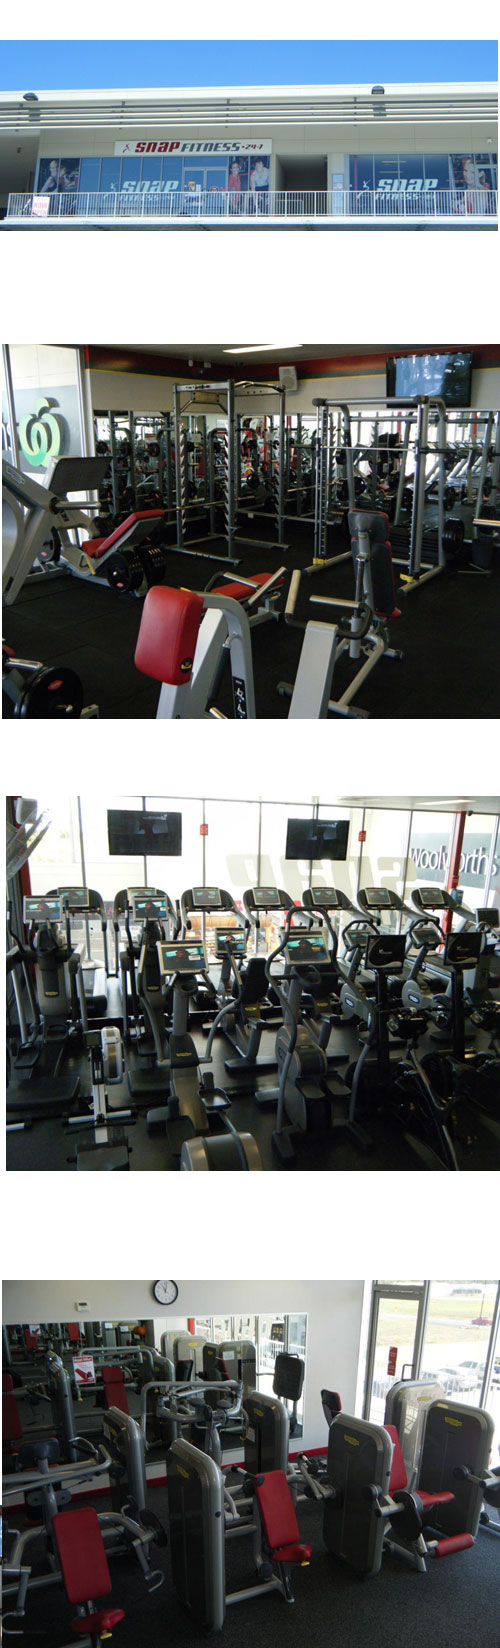 Snap Fitness - Mackay Northern Beaches Mackay